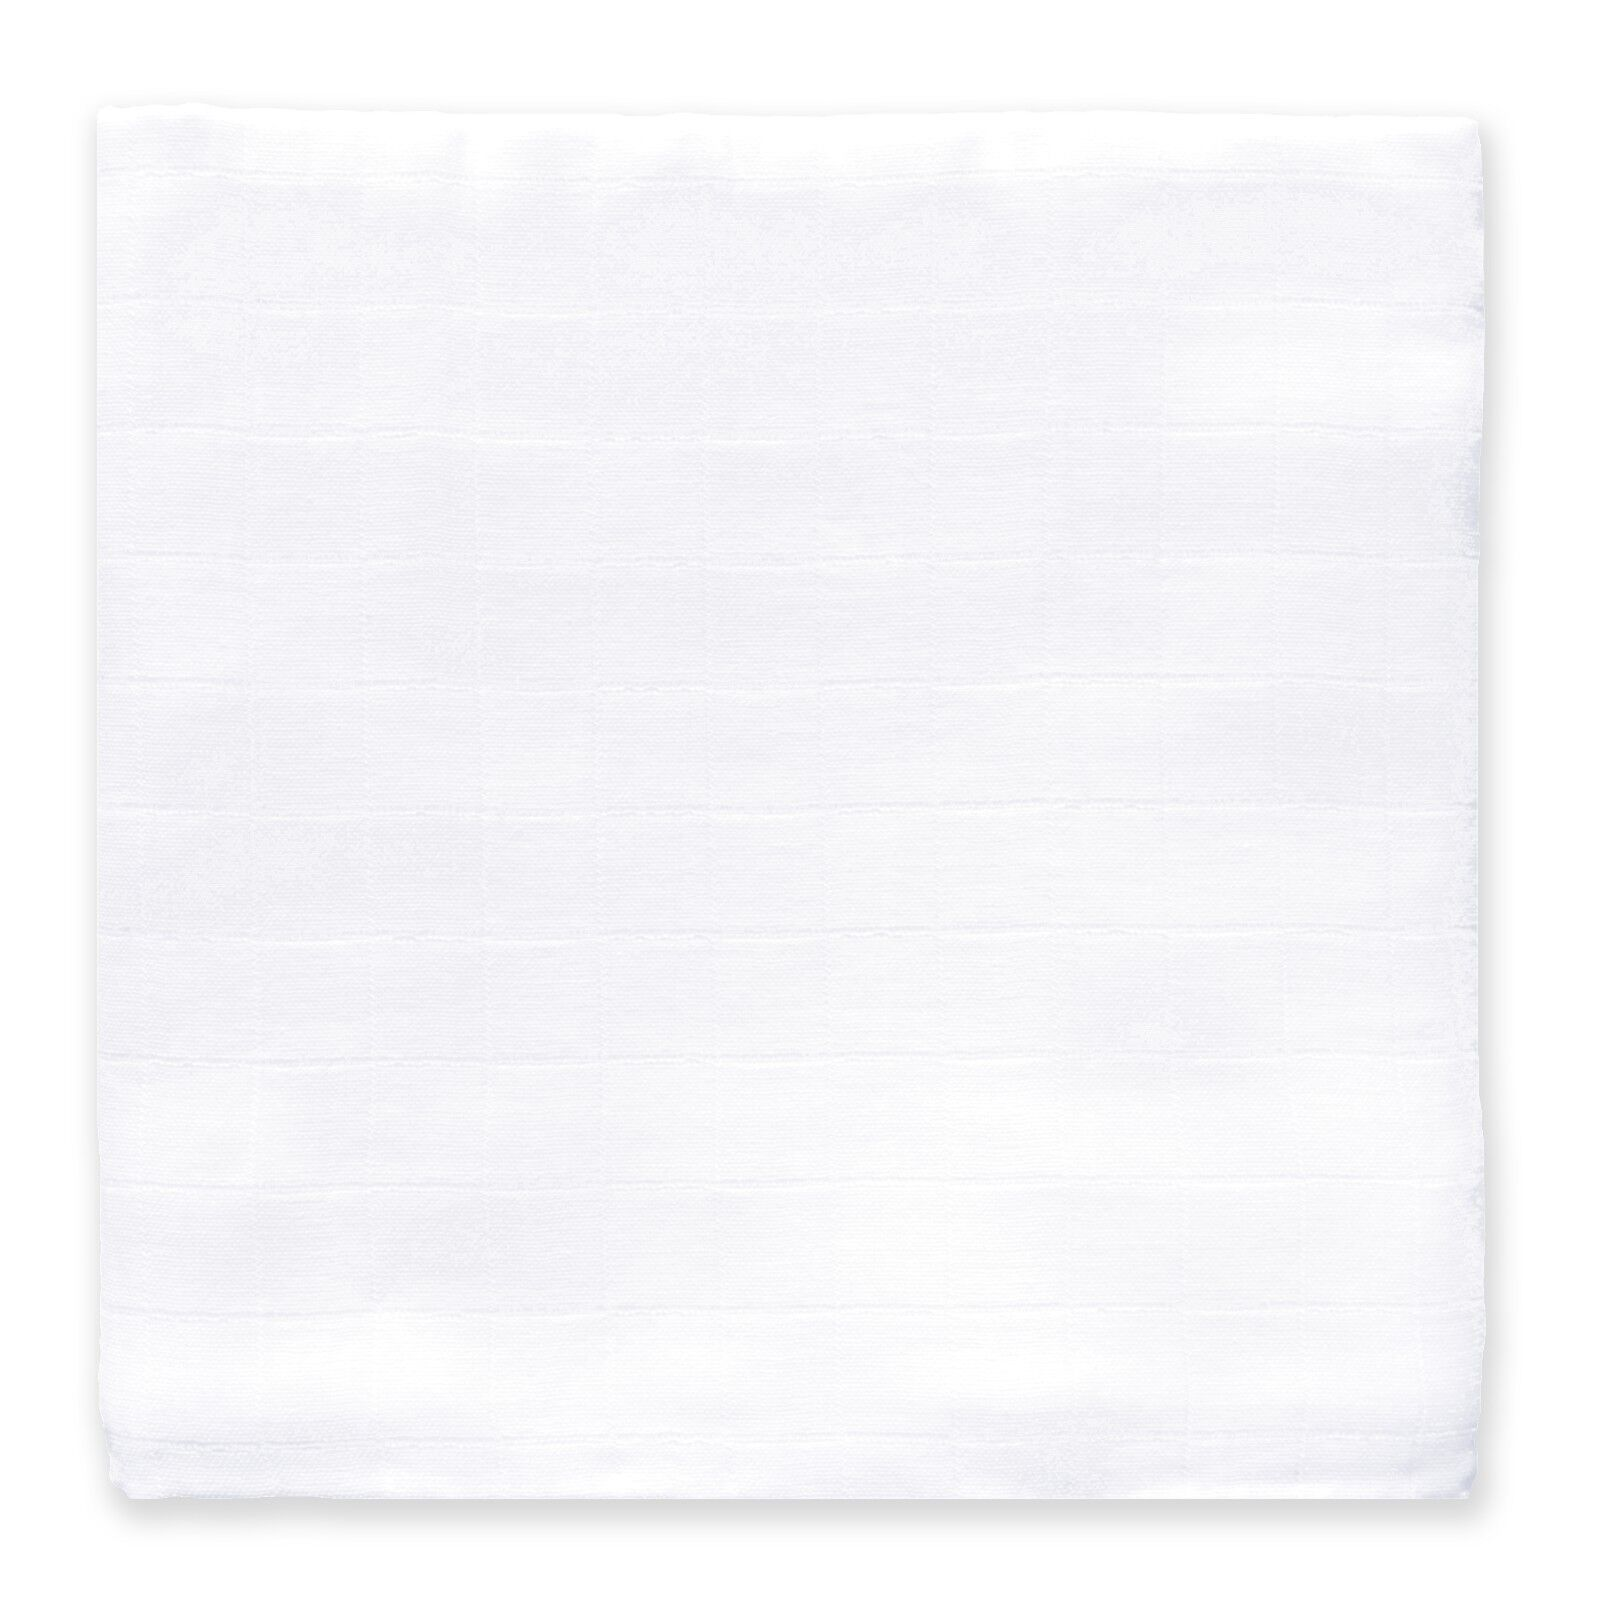 Swaddle Designs Muslin Swaddle Blanket - Pure White  - New &